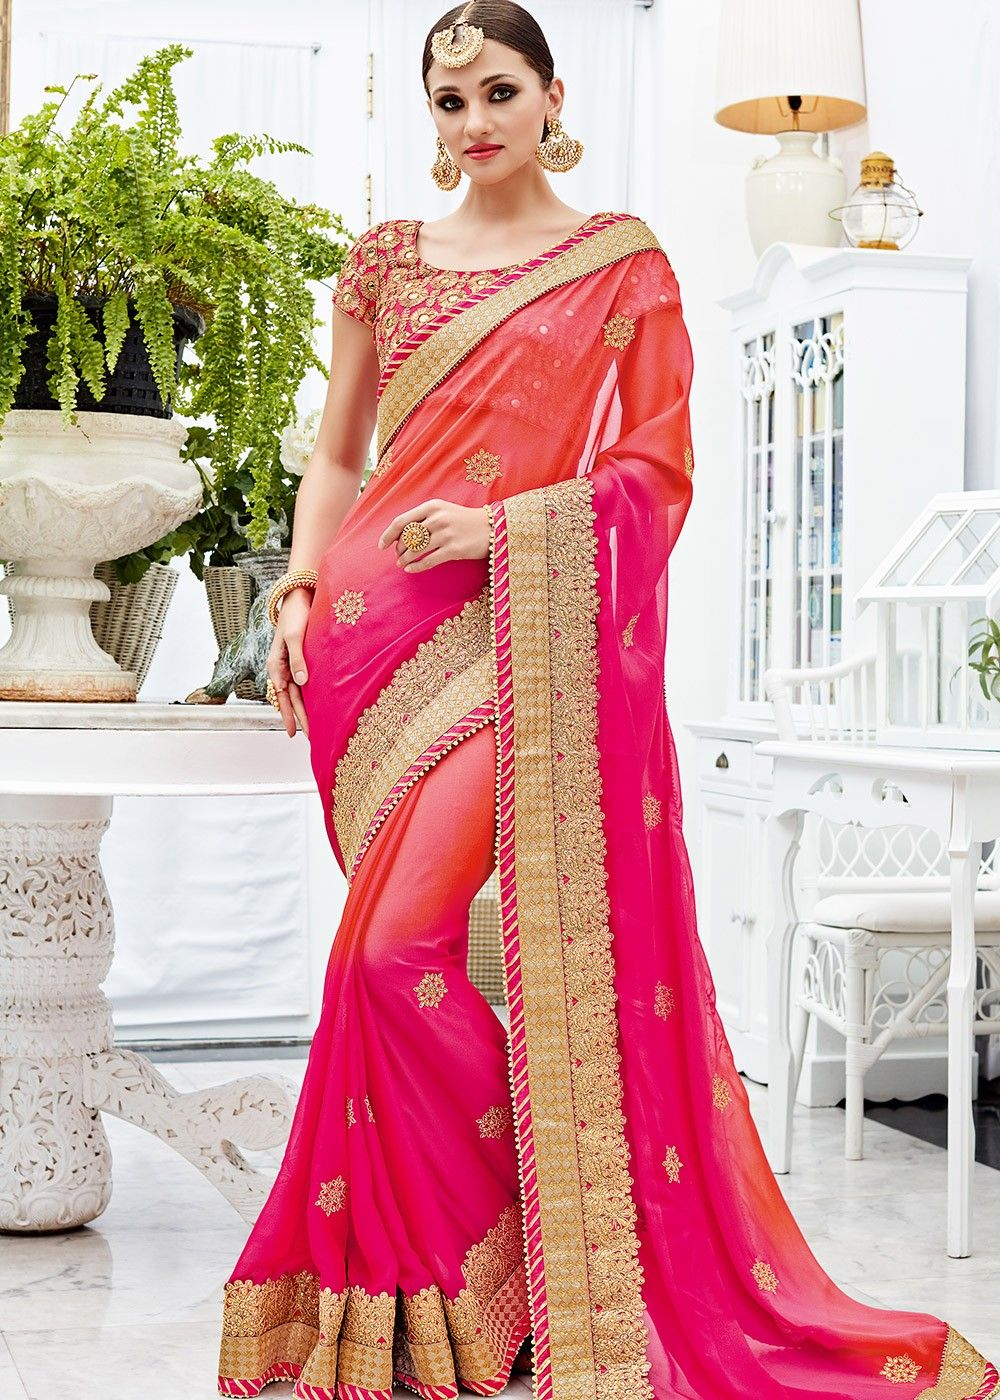 4859d97887 Two tone shaded #silk #chiffon #saree with heavy embroidered borders  throughout. Accompanied by a designer pink art silk blouse in all over  mirror work.